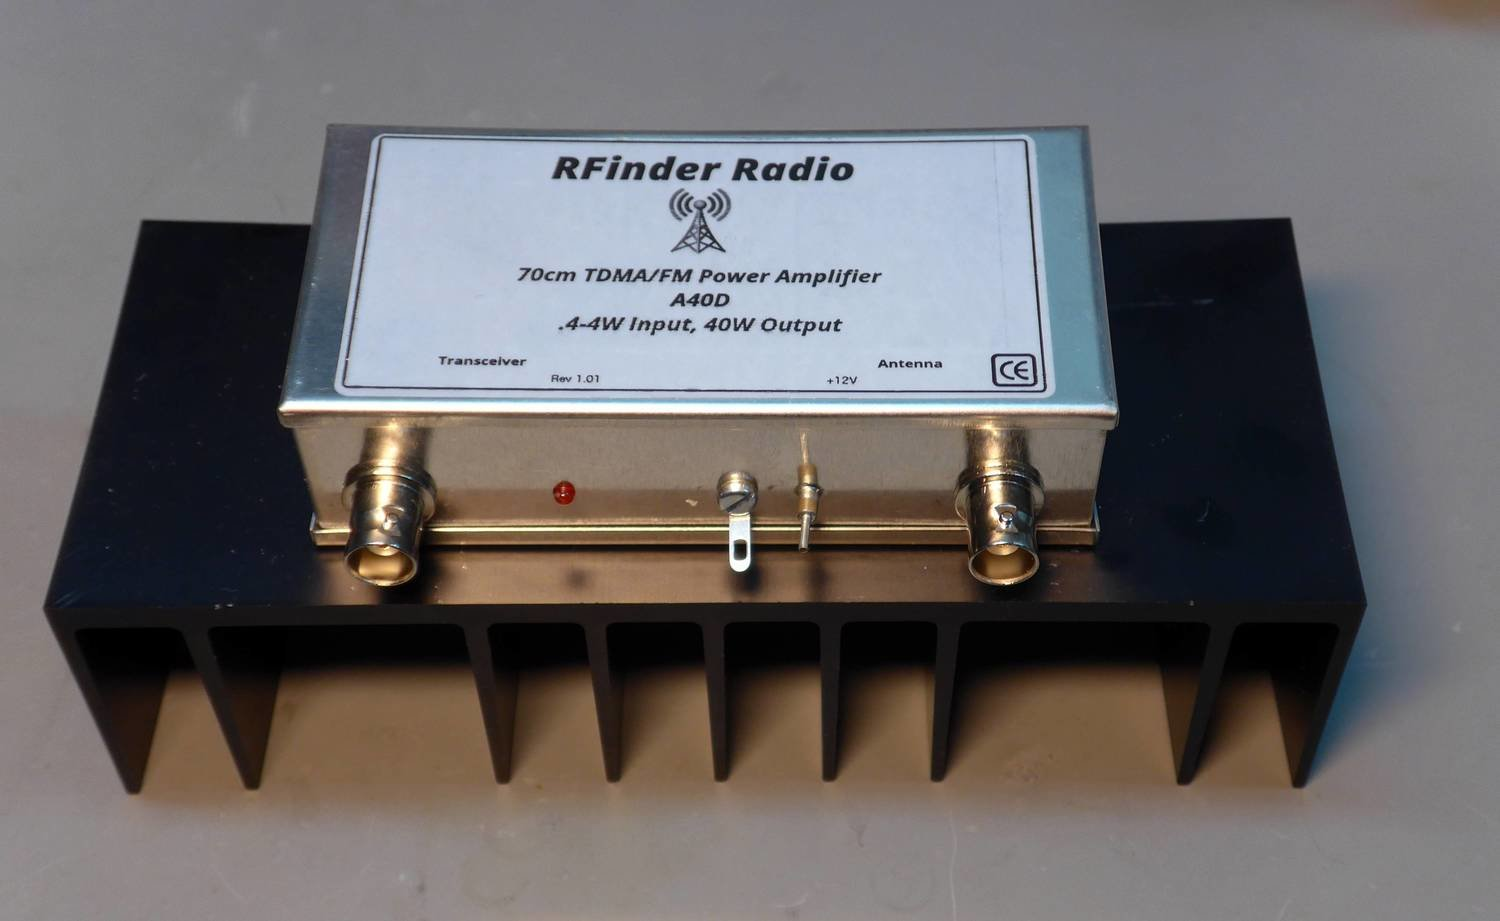 A40D 70cm TDMA/FM Amp....5-4W in, 40W out!